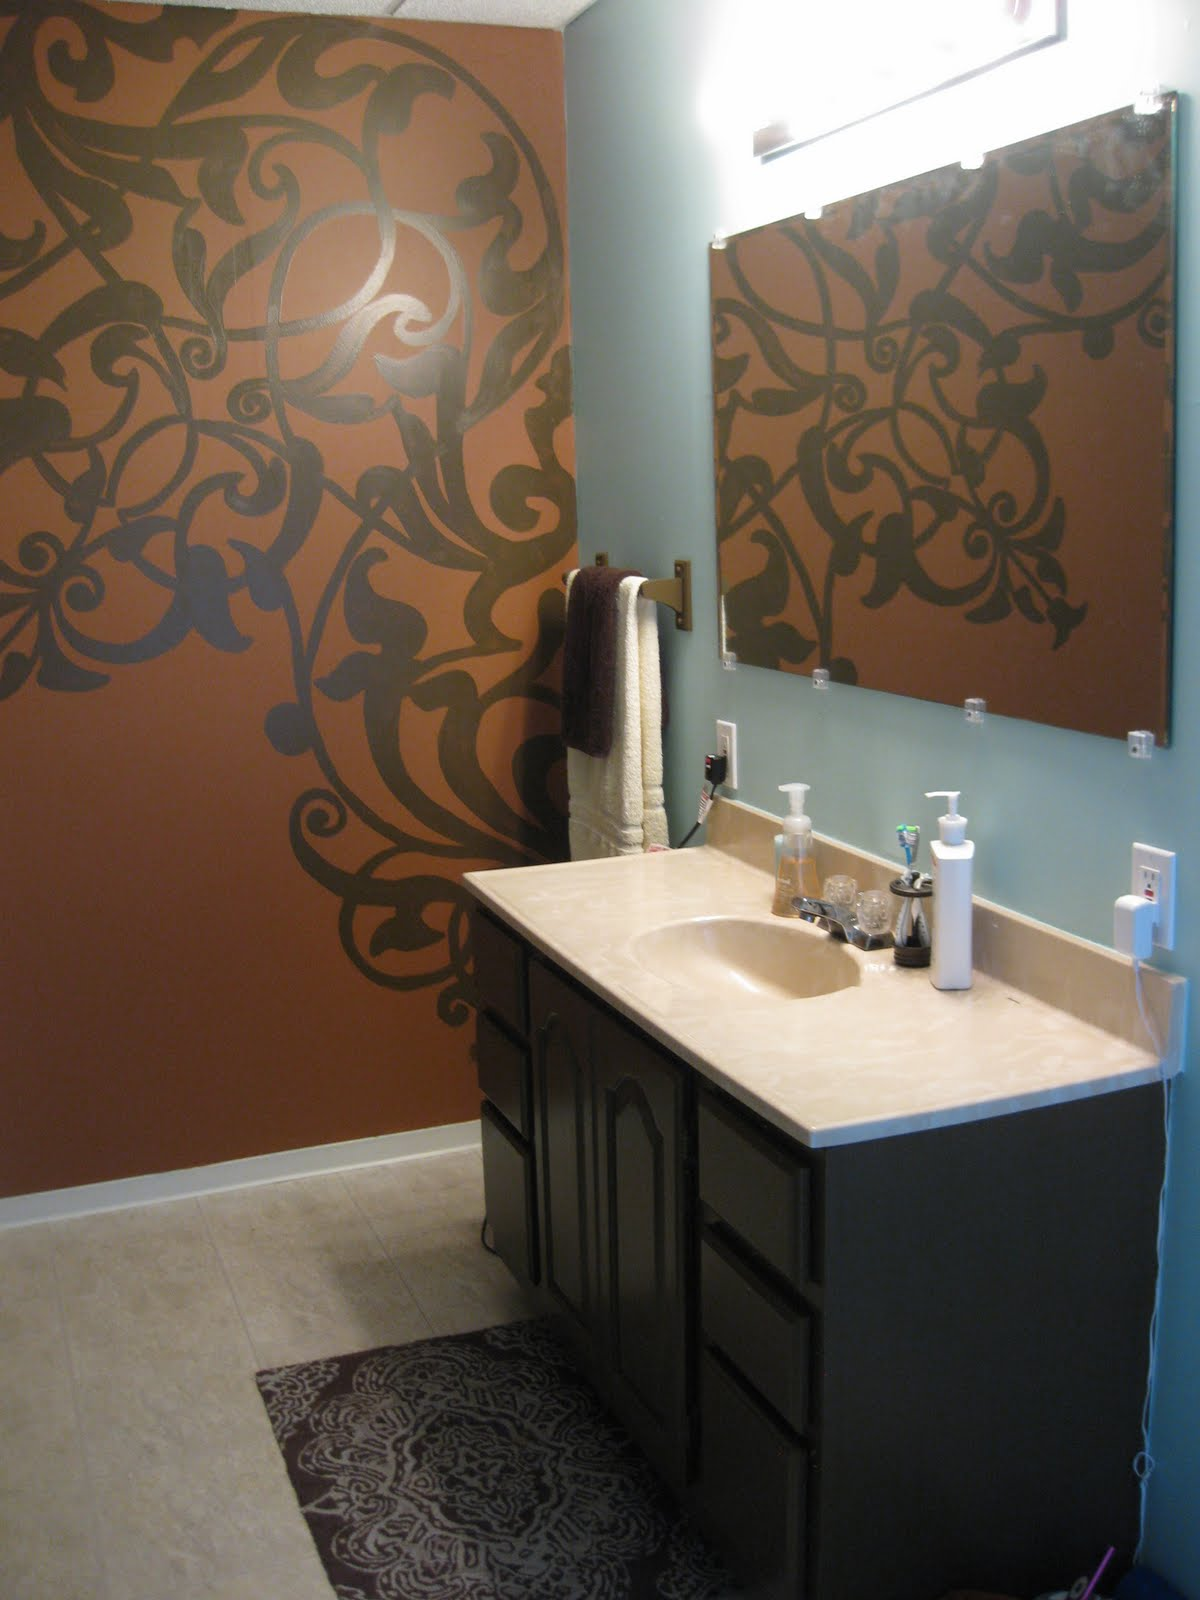 Best Wall Paint For Bathroom: Downstairs Bathroom: Part 2